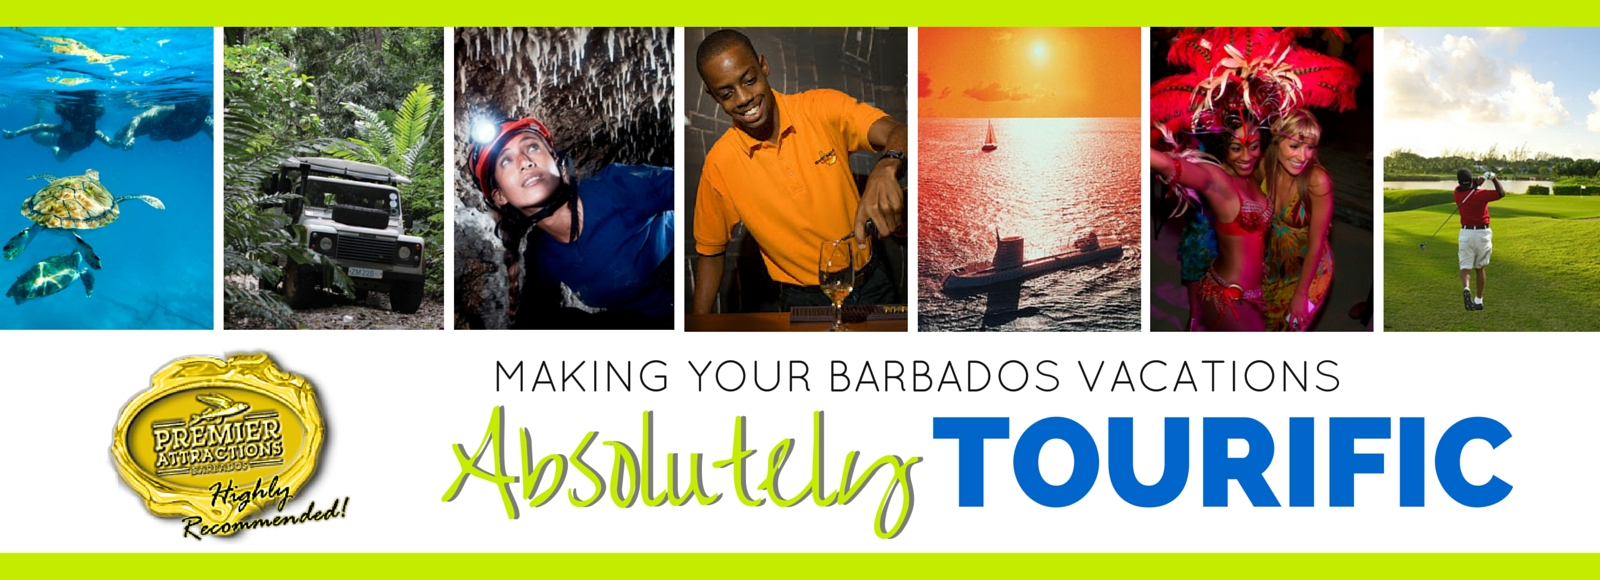 Book Early & Get Great Rates on Barbados' Best Tours & Activities